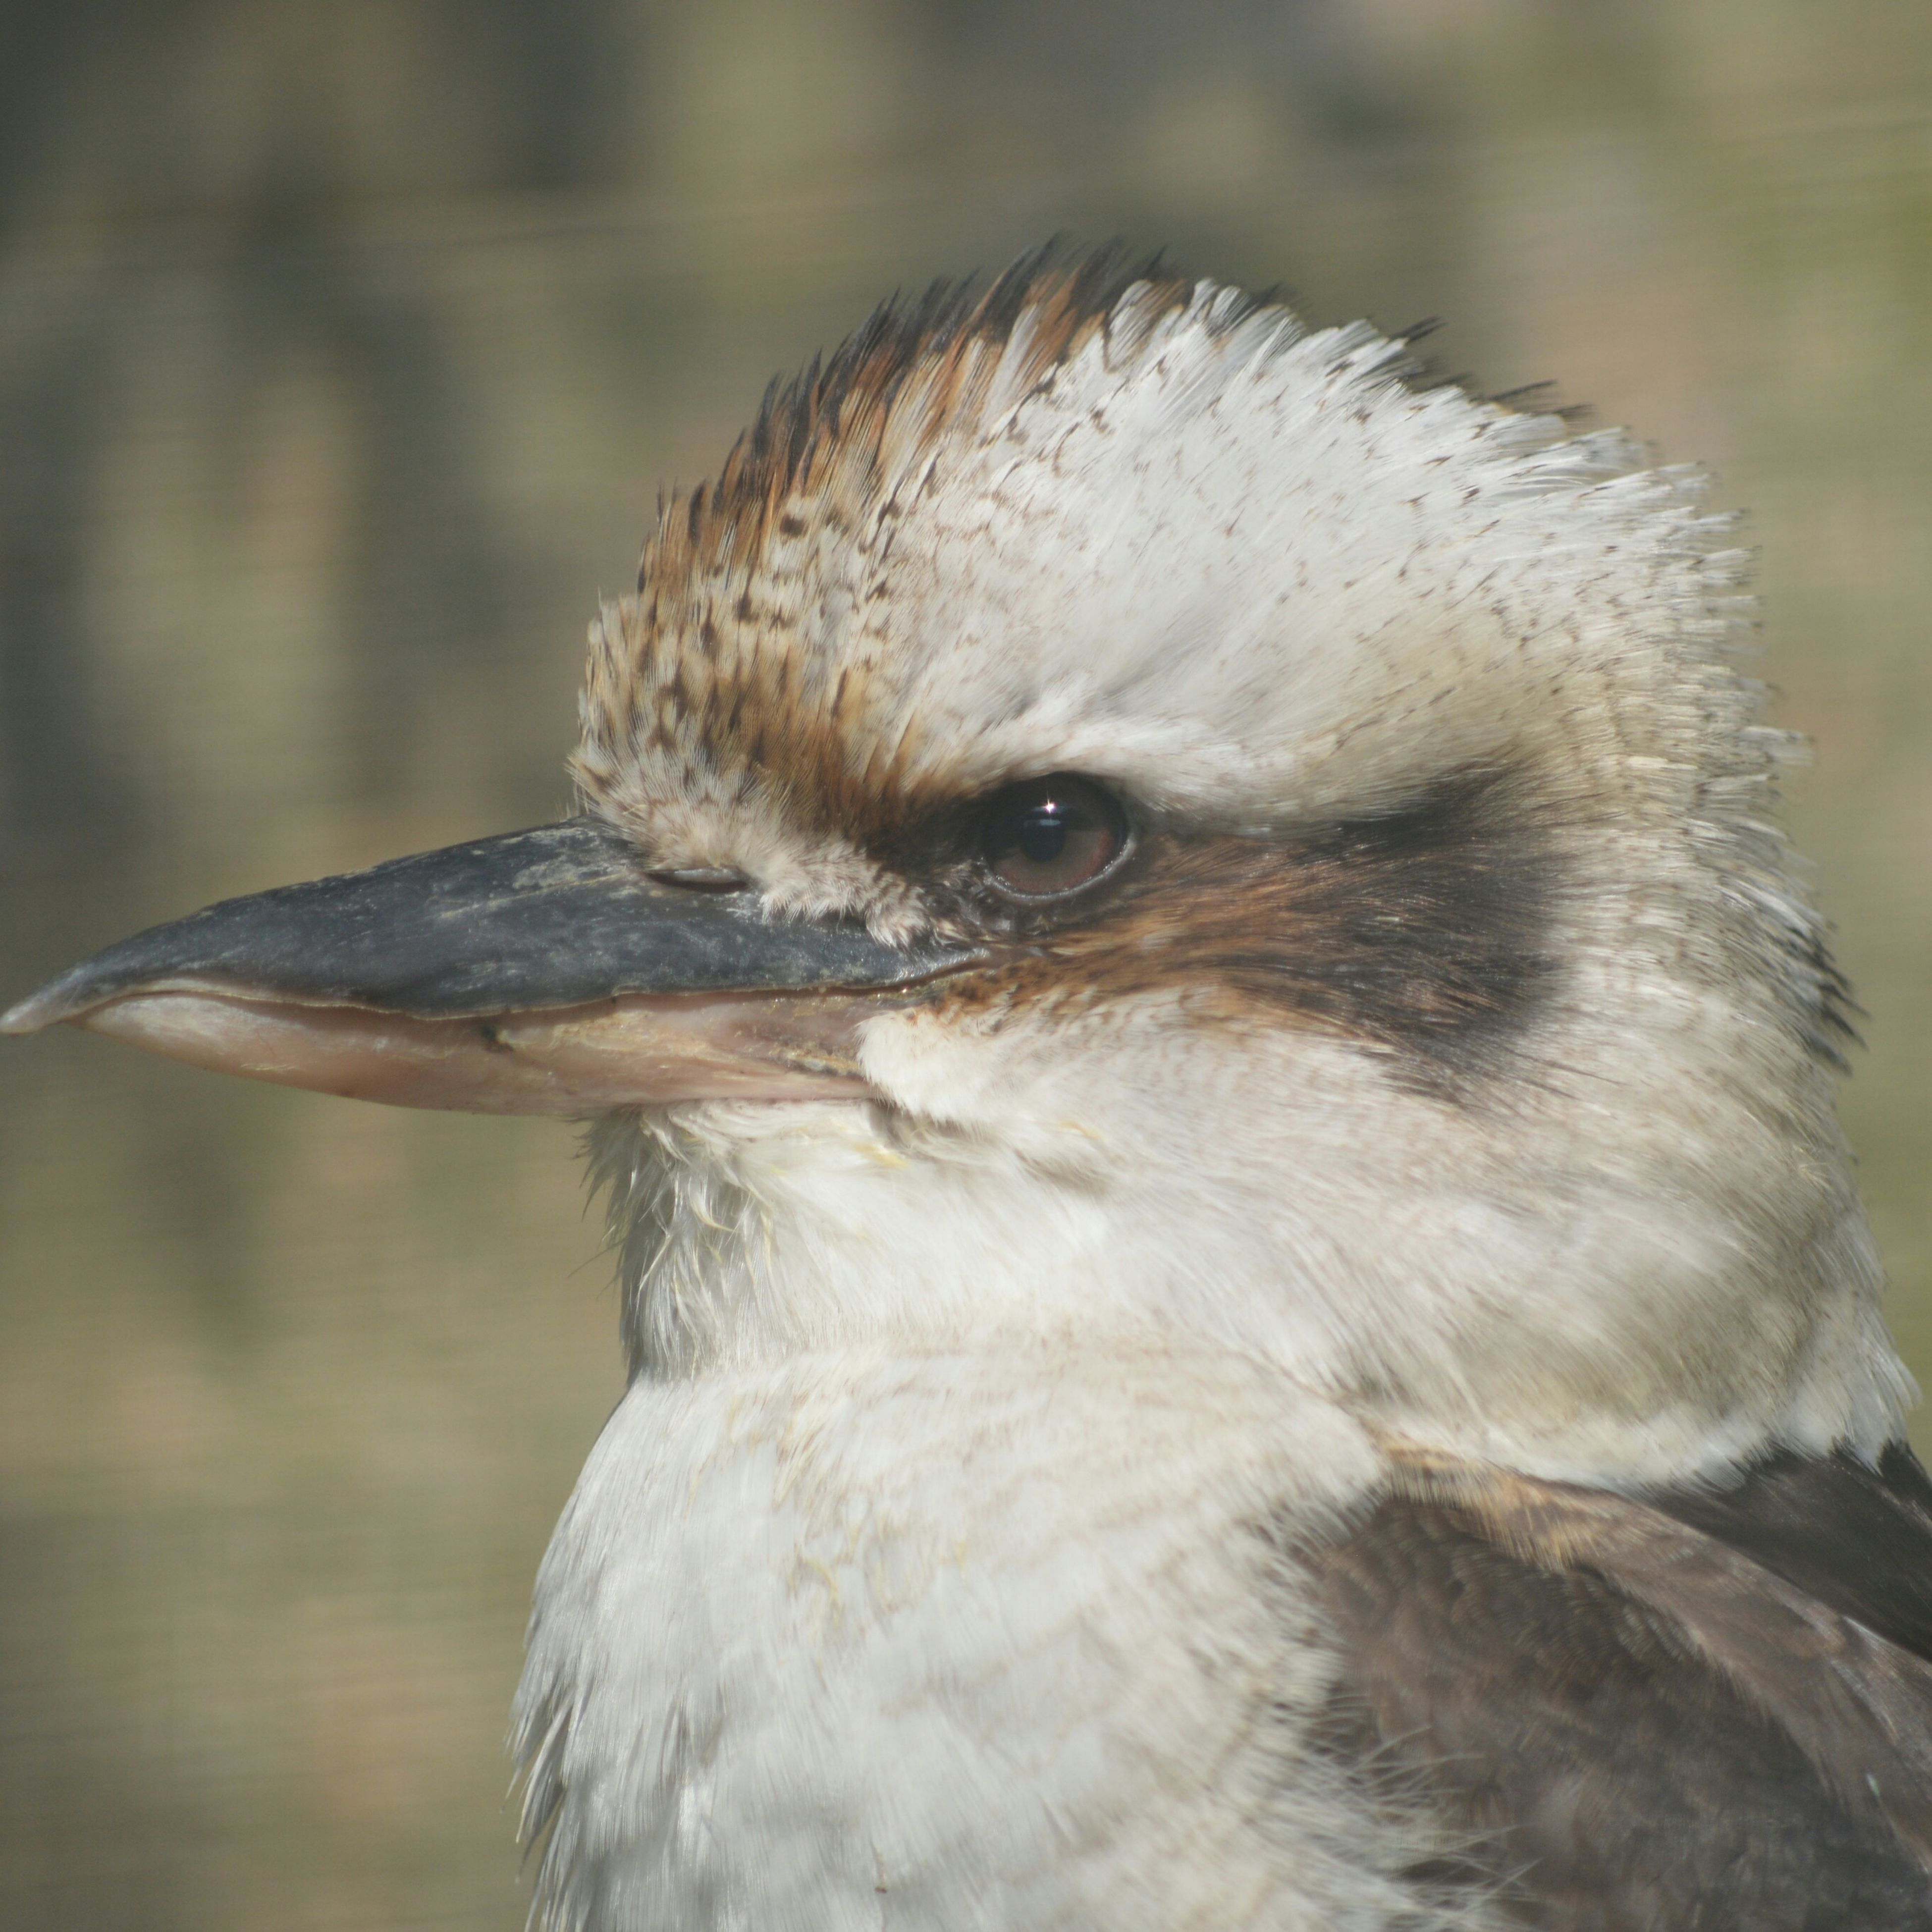 animal themes, one animal, bird, animals in the wild, wildlife, beak, close-up, focus on foreground, animal head, bird of prey, animal body part, looking away, nature, outdoors, feather, owl, animal hair, day, side view, no people